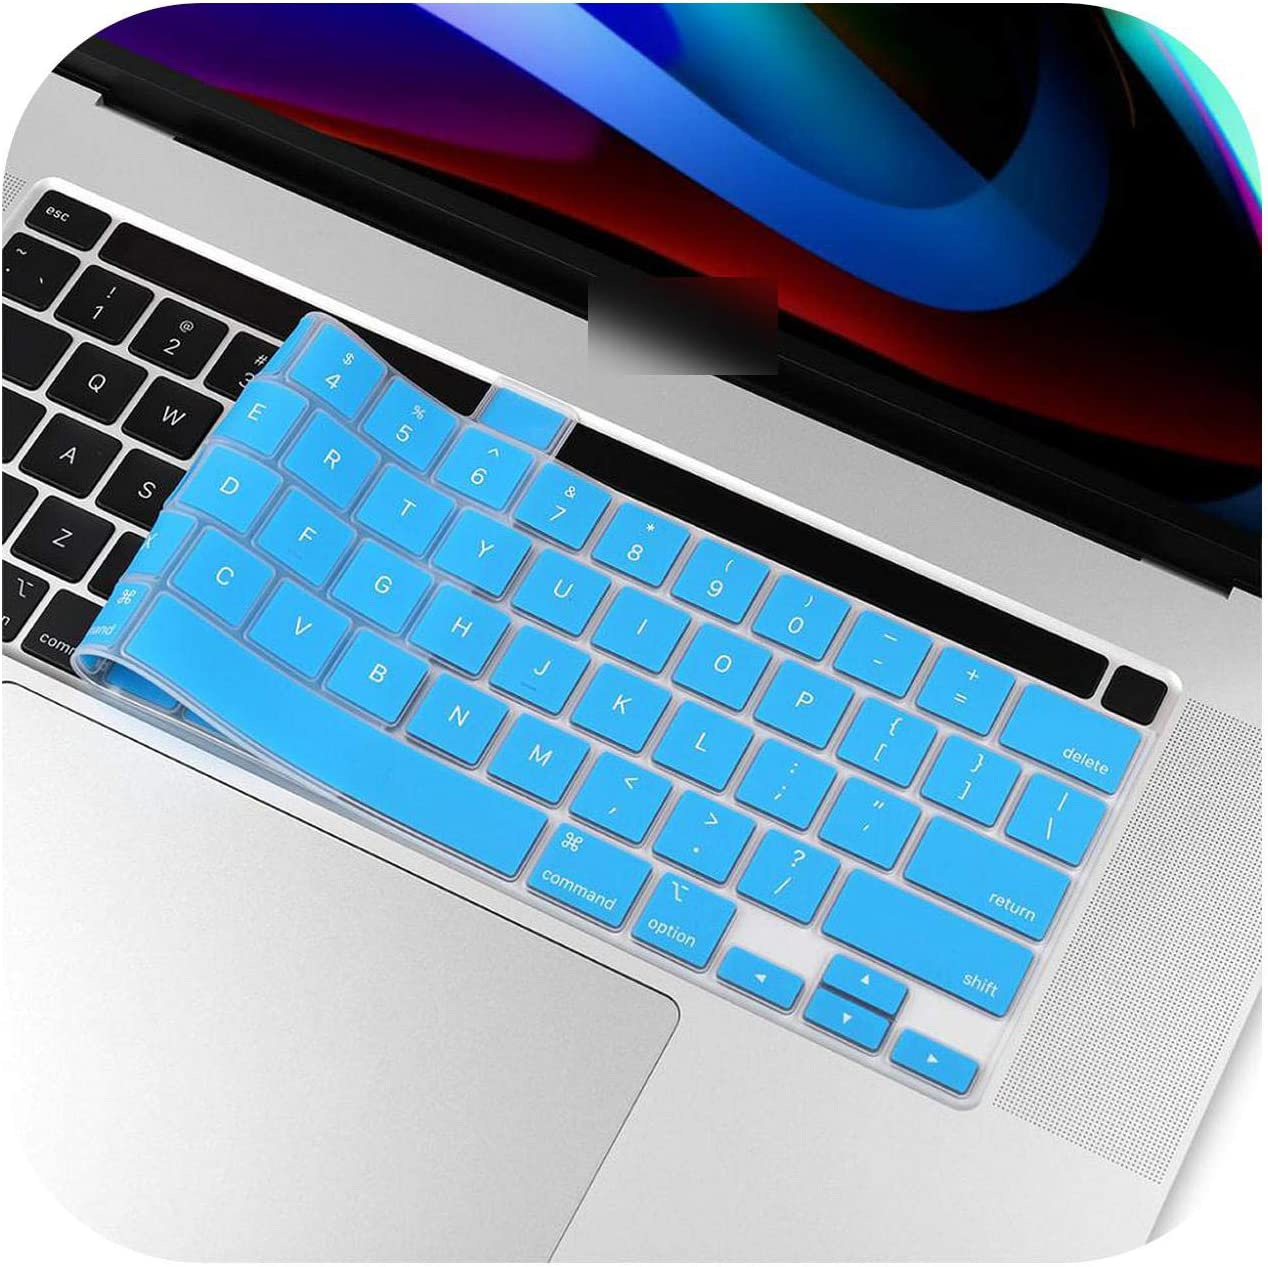 Solid Blue Us English Silicon Keyboard Cover Transparent Clear Protector for MacBook Pro 16 Inch 2019 A2141 Touch Bar//Touch Id